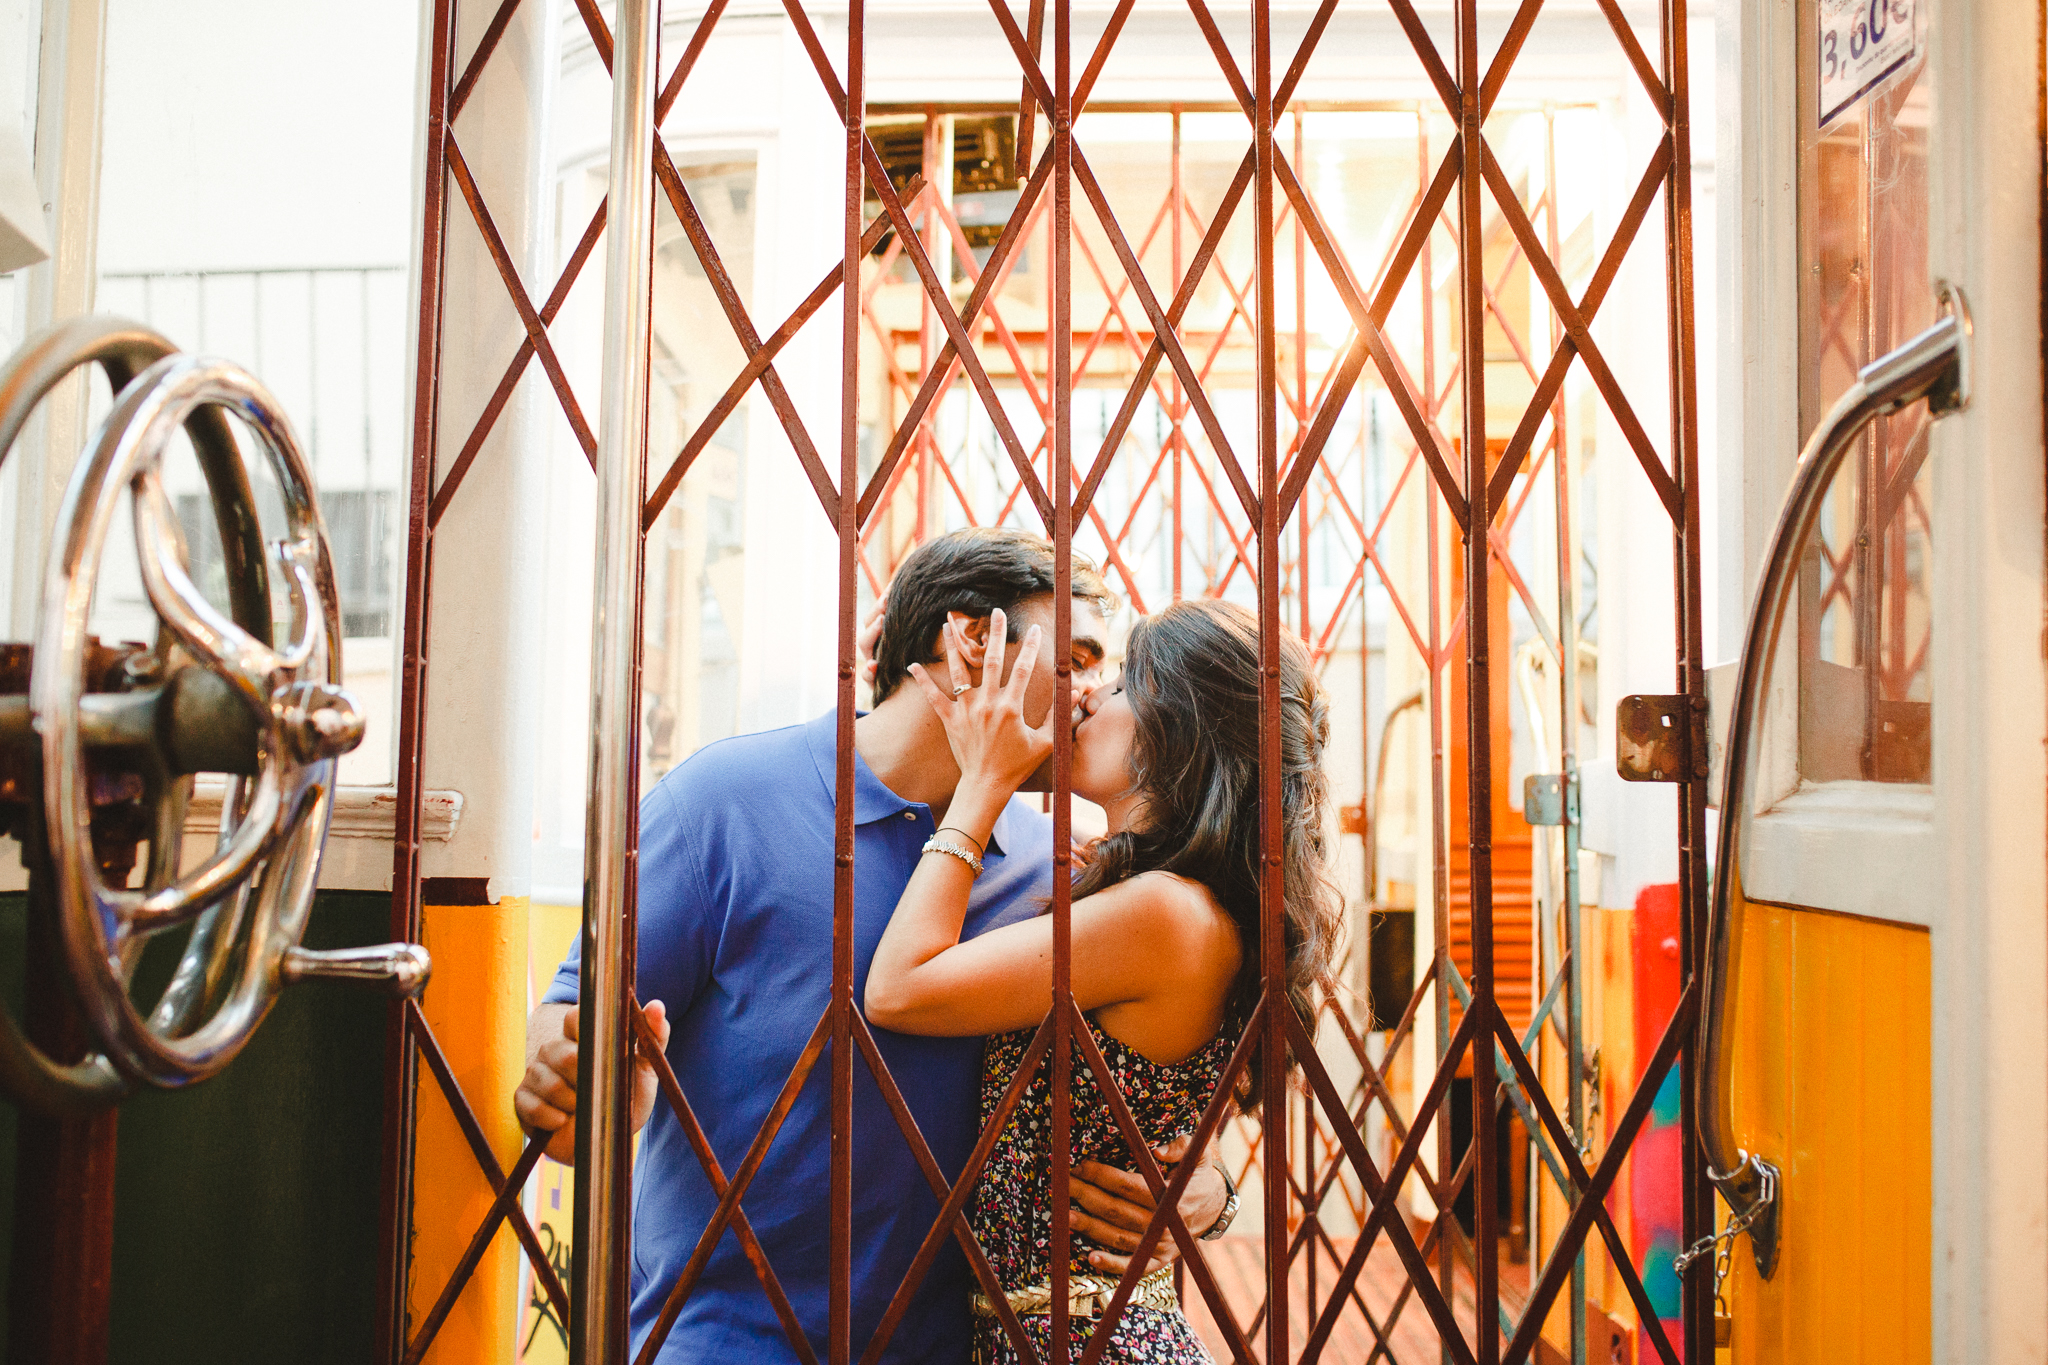 Sessão de Namoro em Lisboa, Engagement Shoot in Lisbon by Hello Twiggs